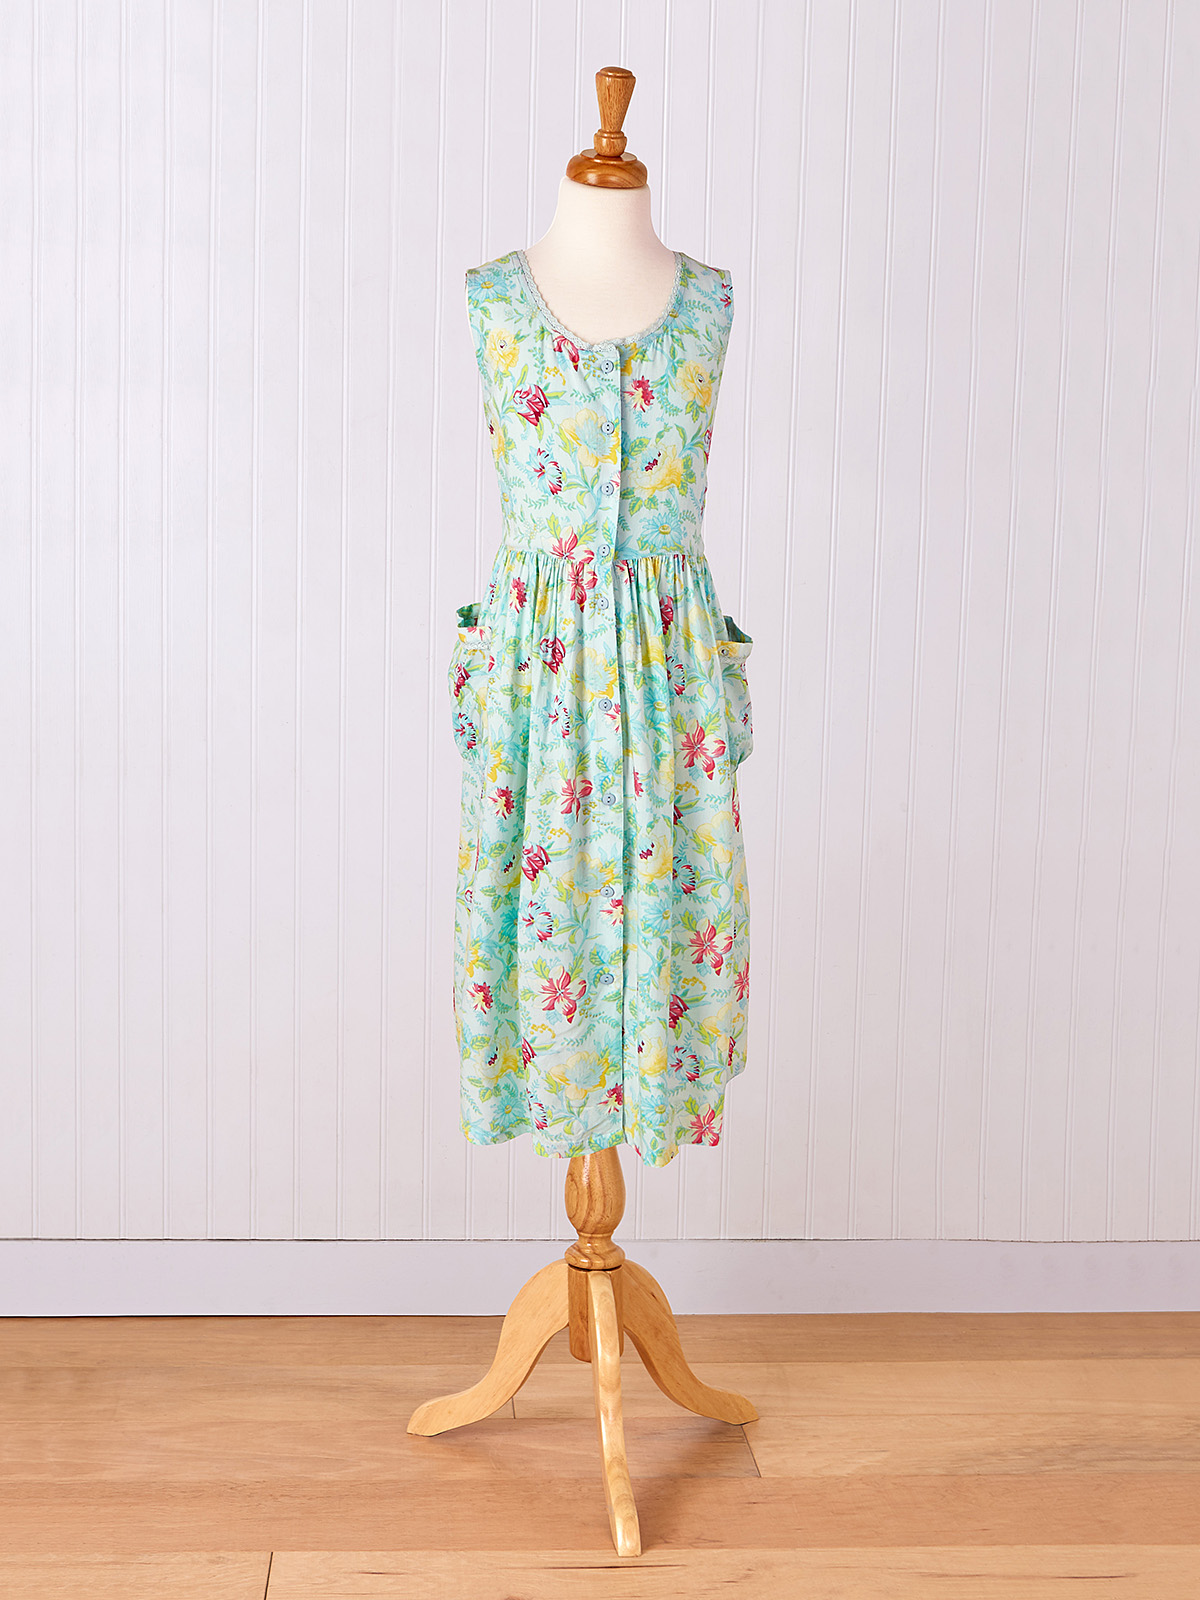 Virginia Young Lady Dress